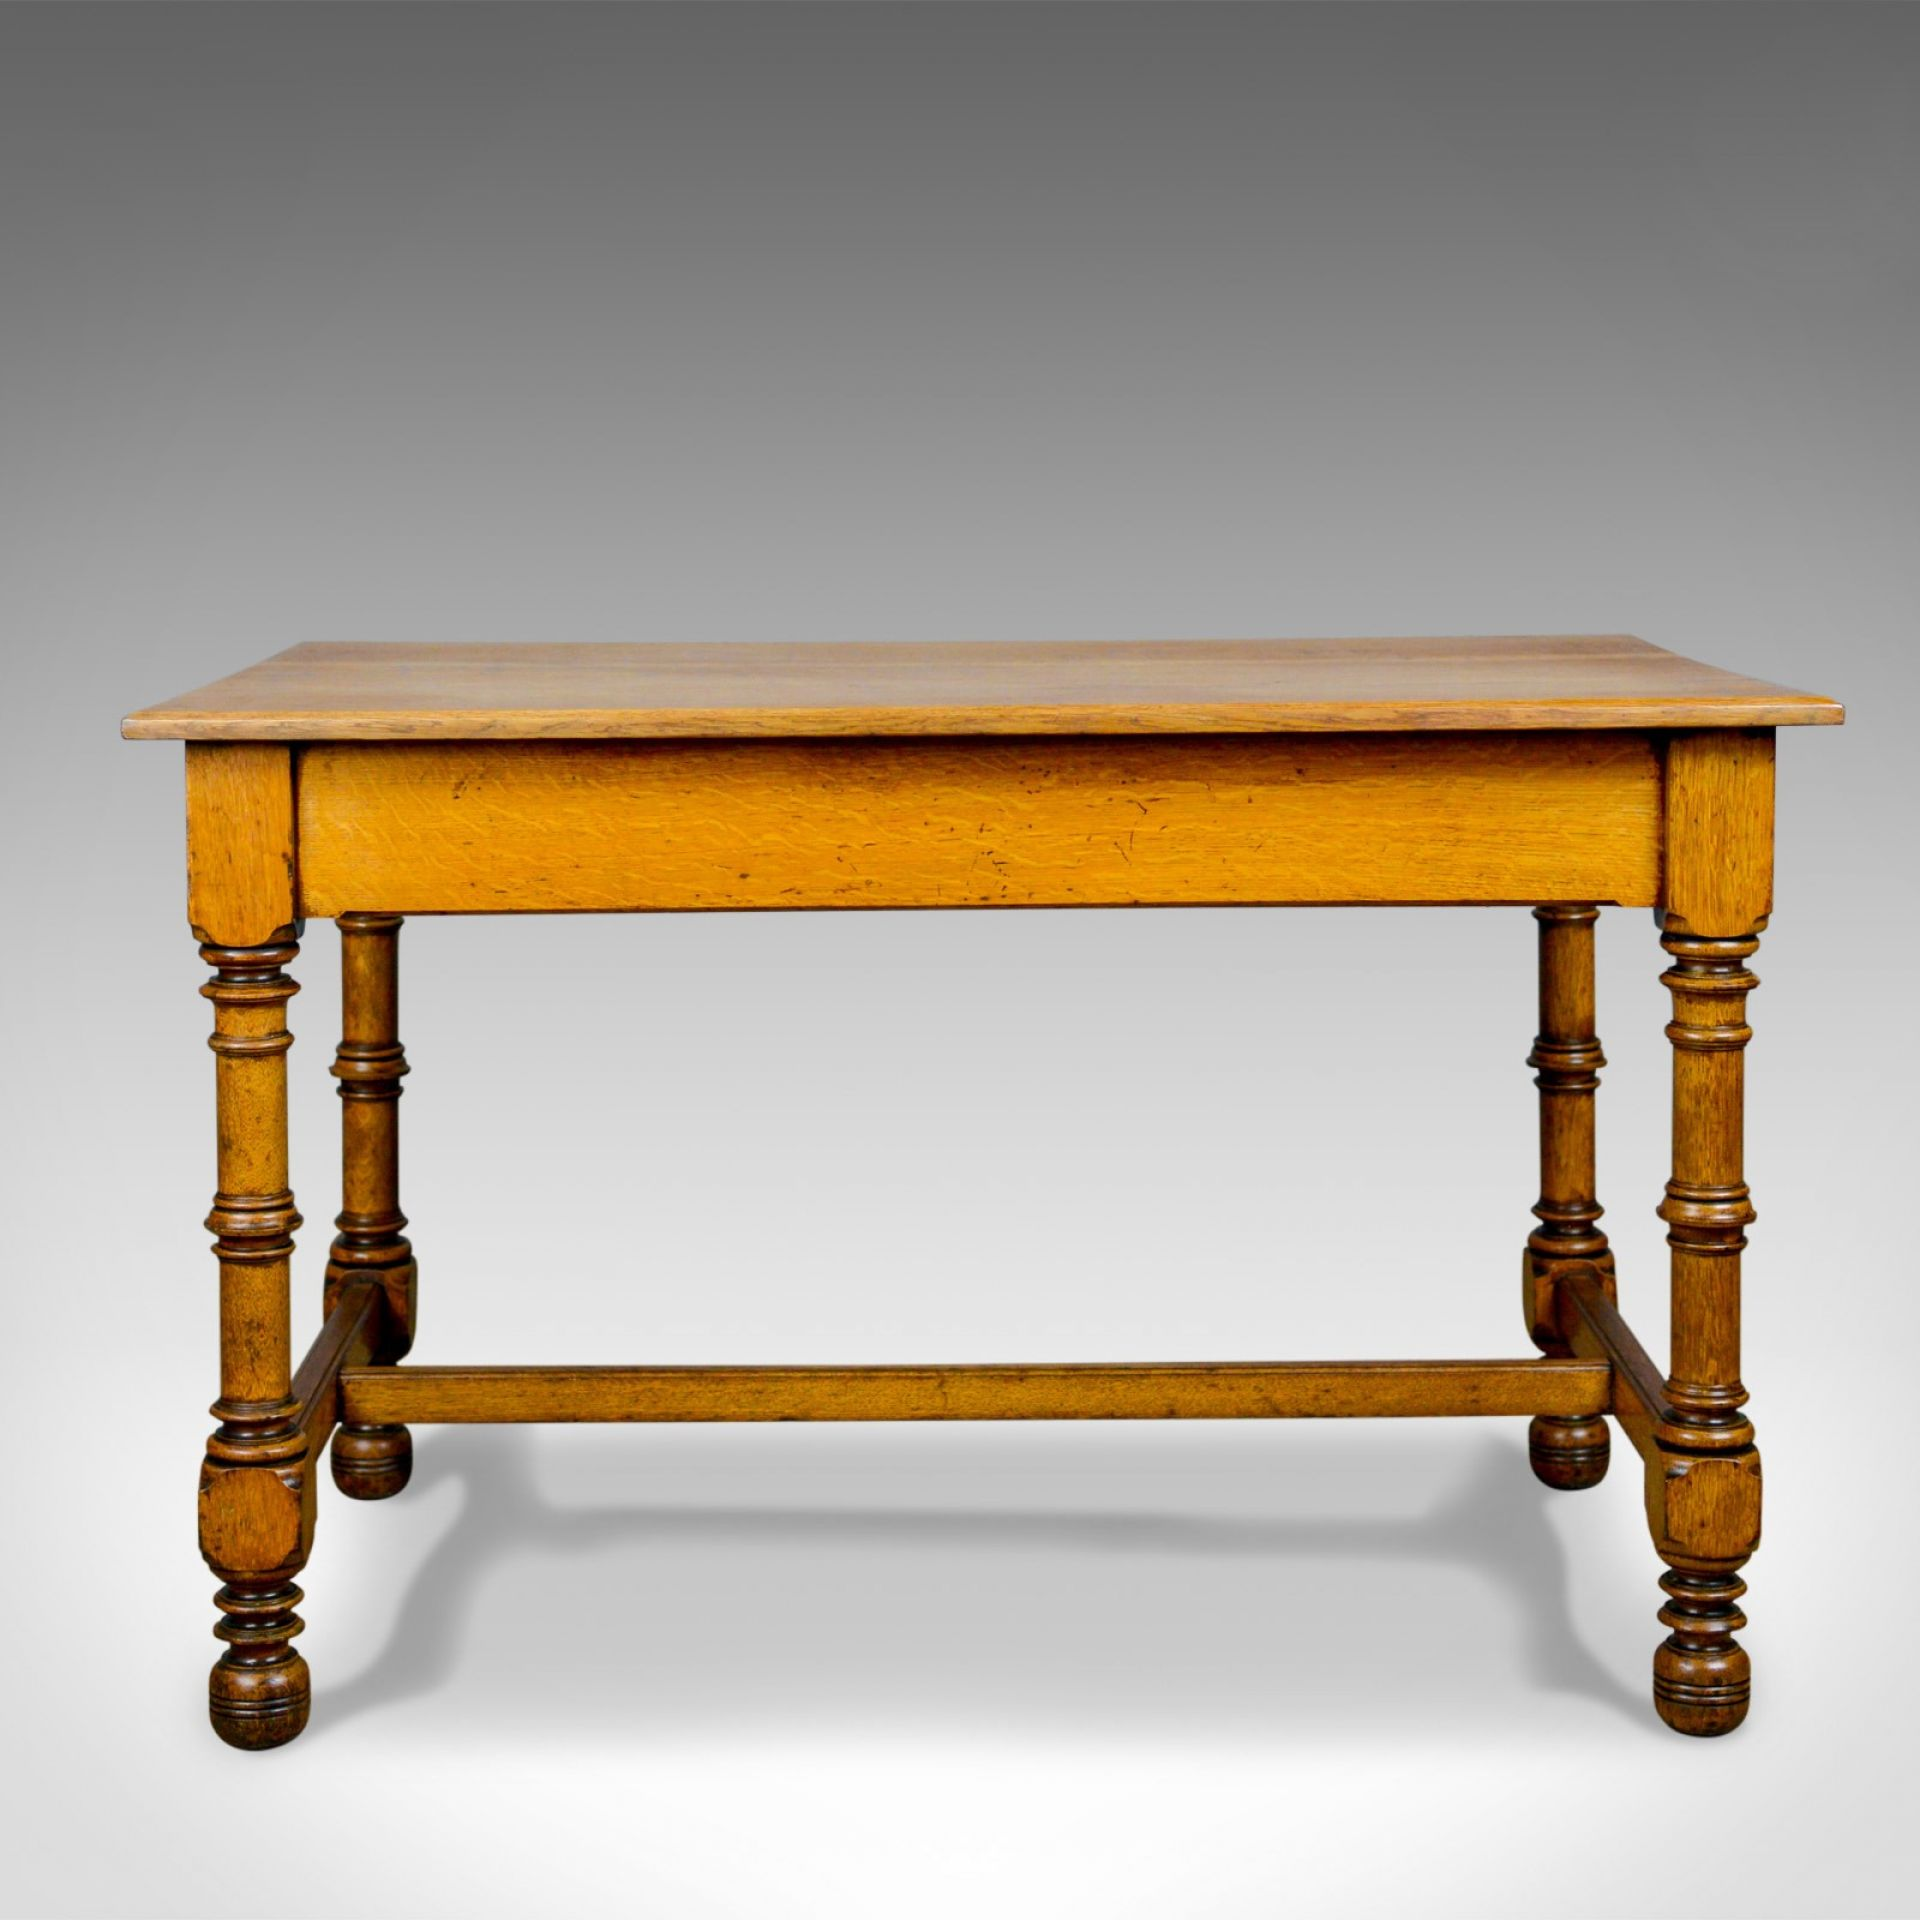 Antique Writing Table, English, Victorian, Side, Oak, Late C19th, Circa 1870